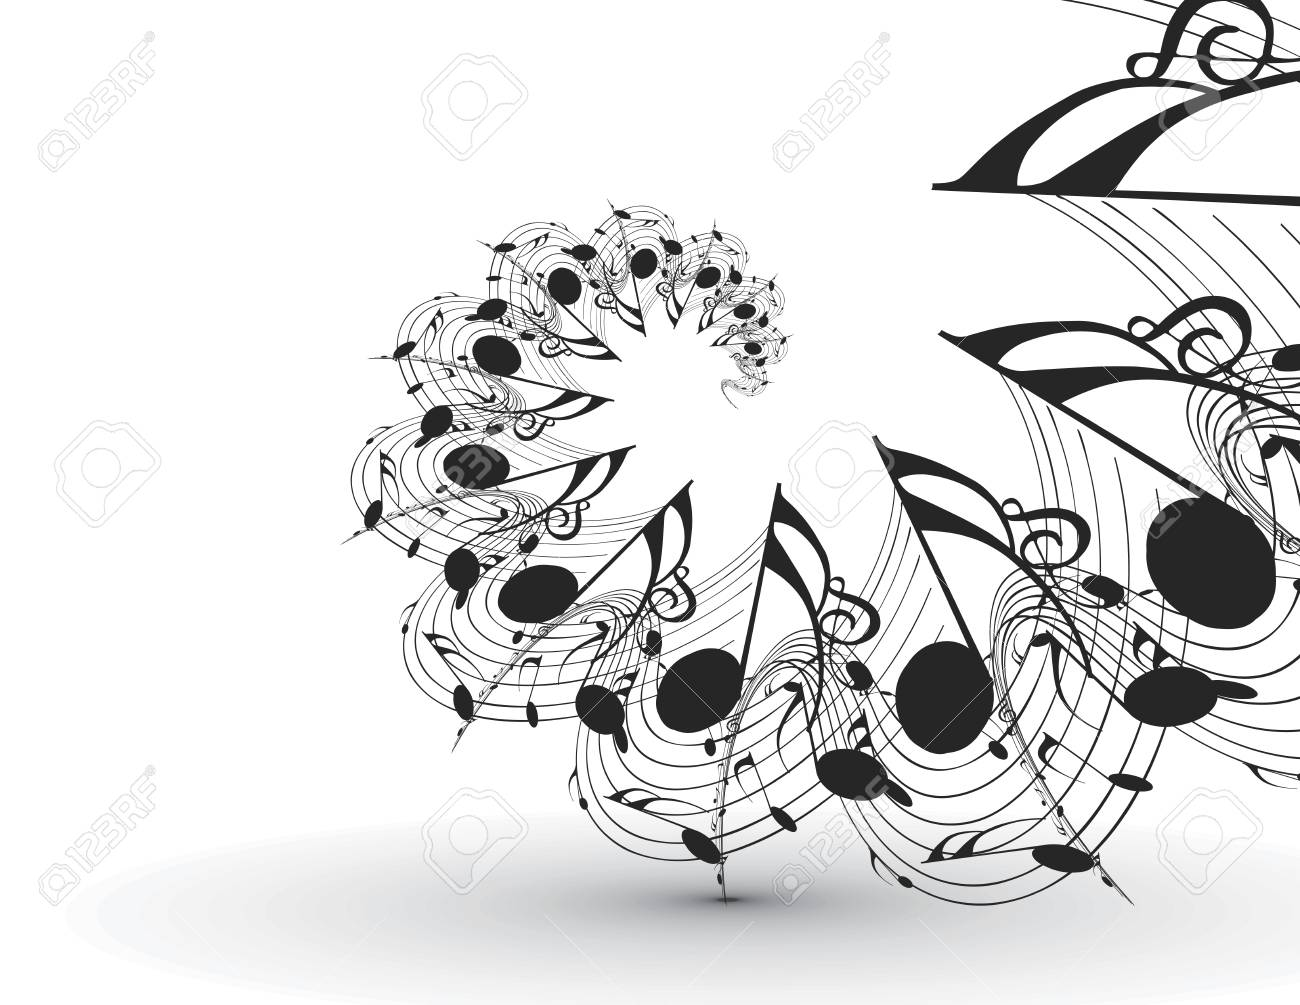 Abstract musical notes background for design use Stock Vector - 23760761